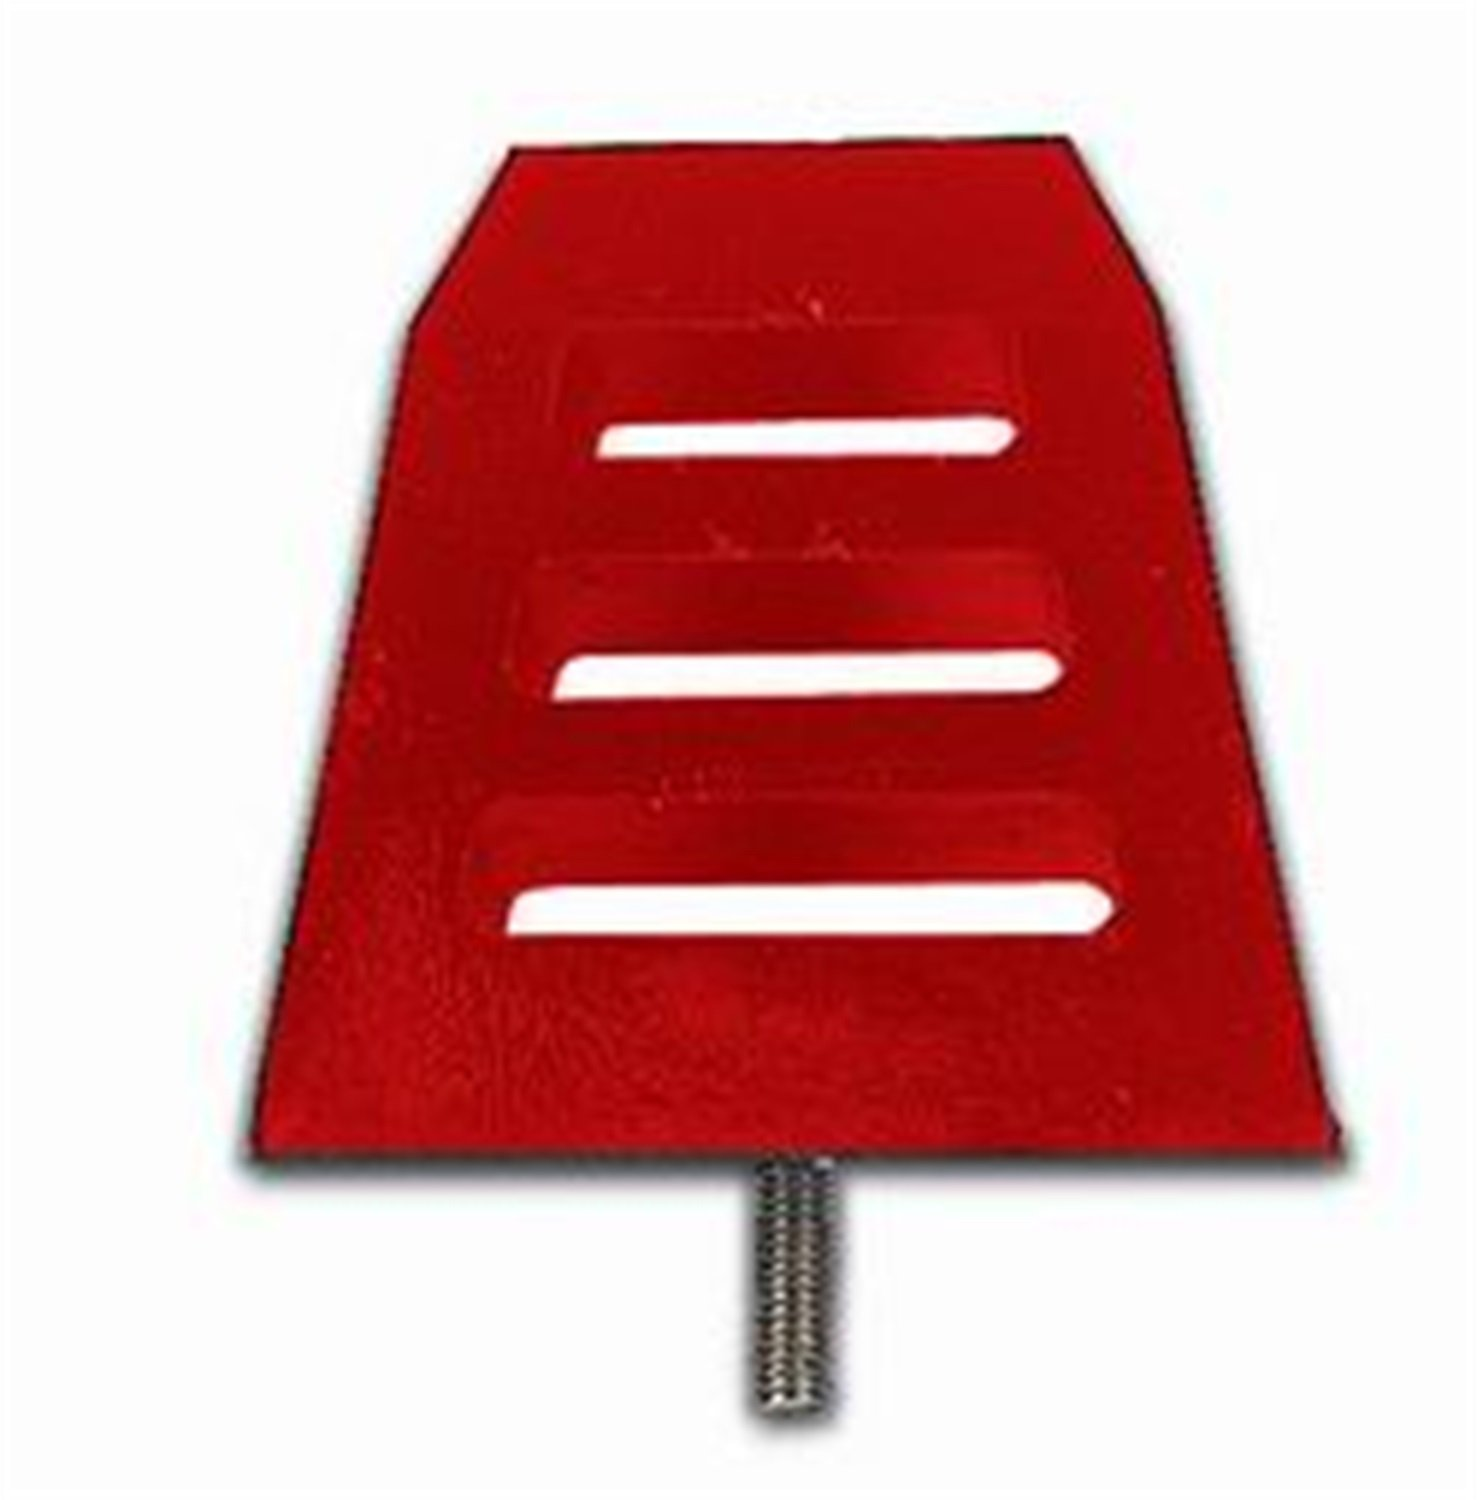 Pro Comp 69091 Red Urethane Large Progressive Bumpstop, (Set of 2) by Pro Comp